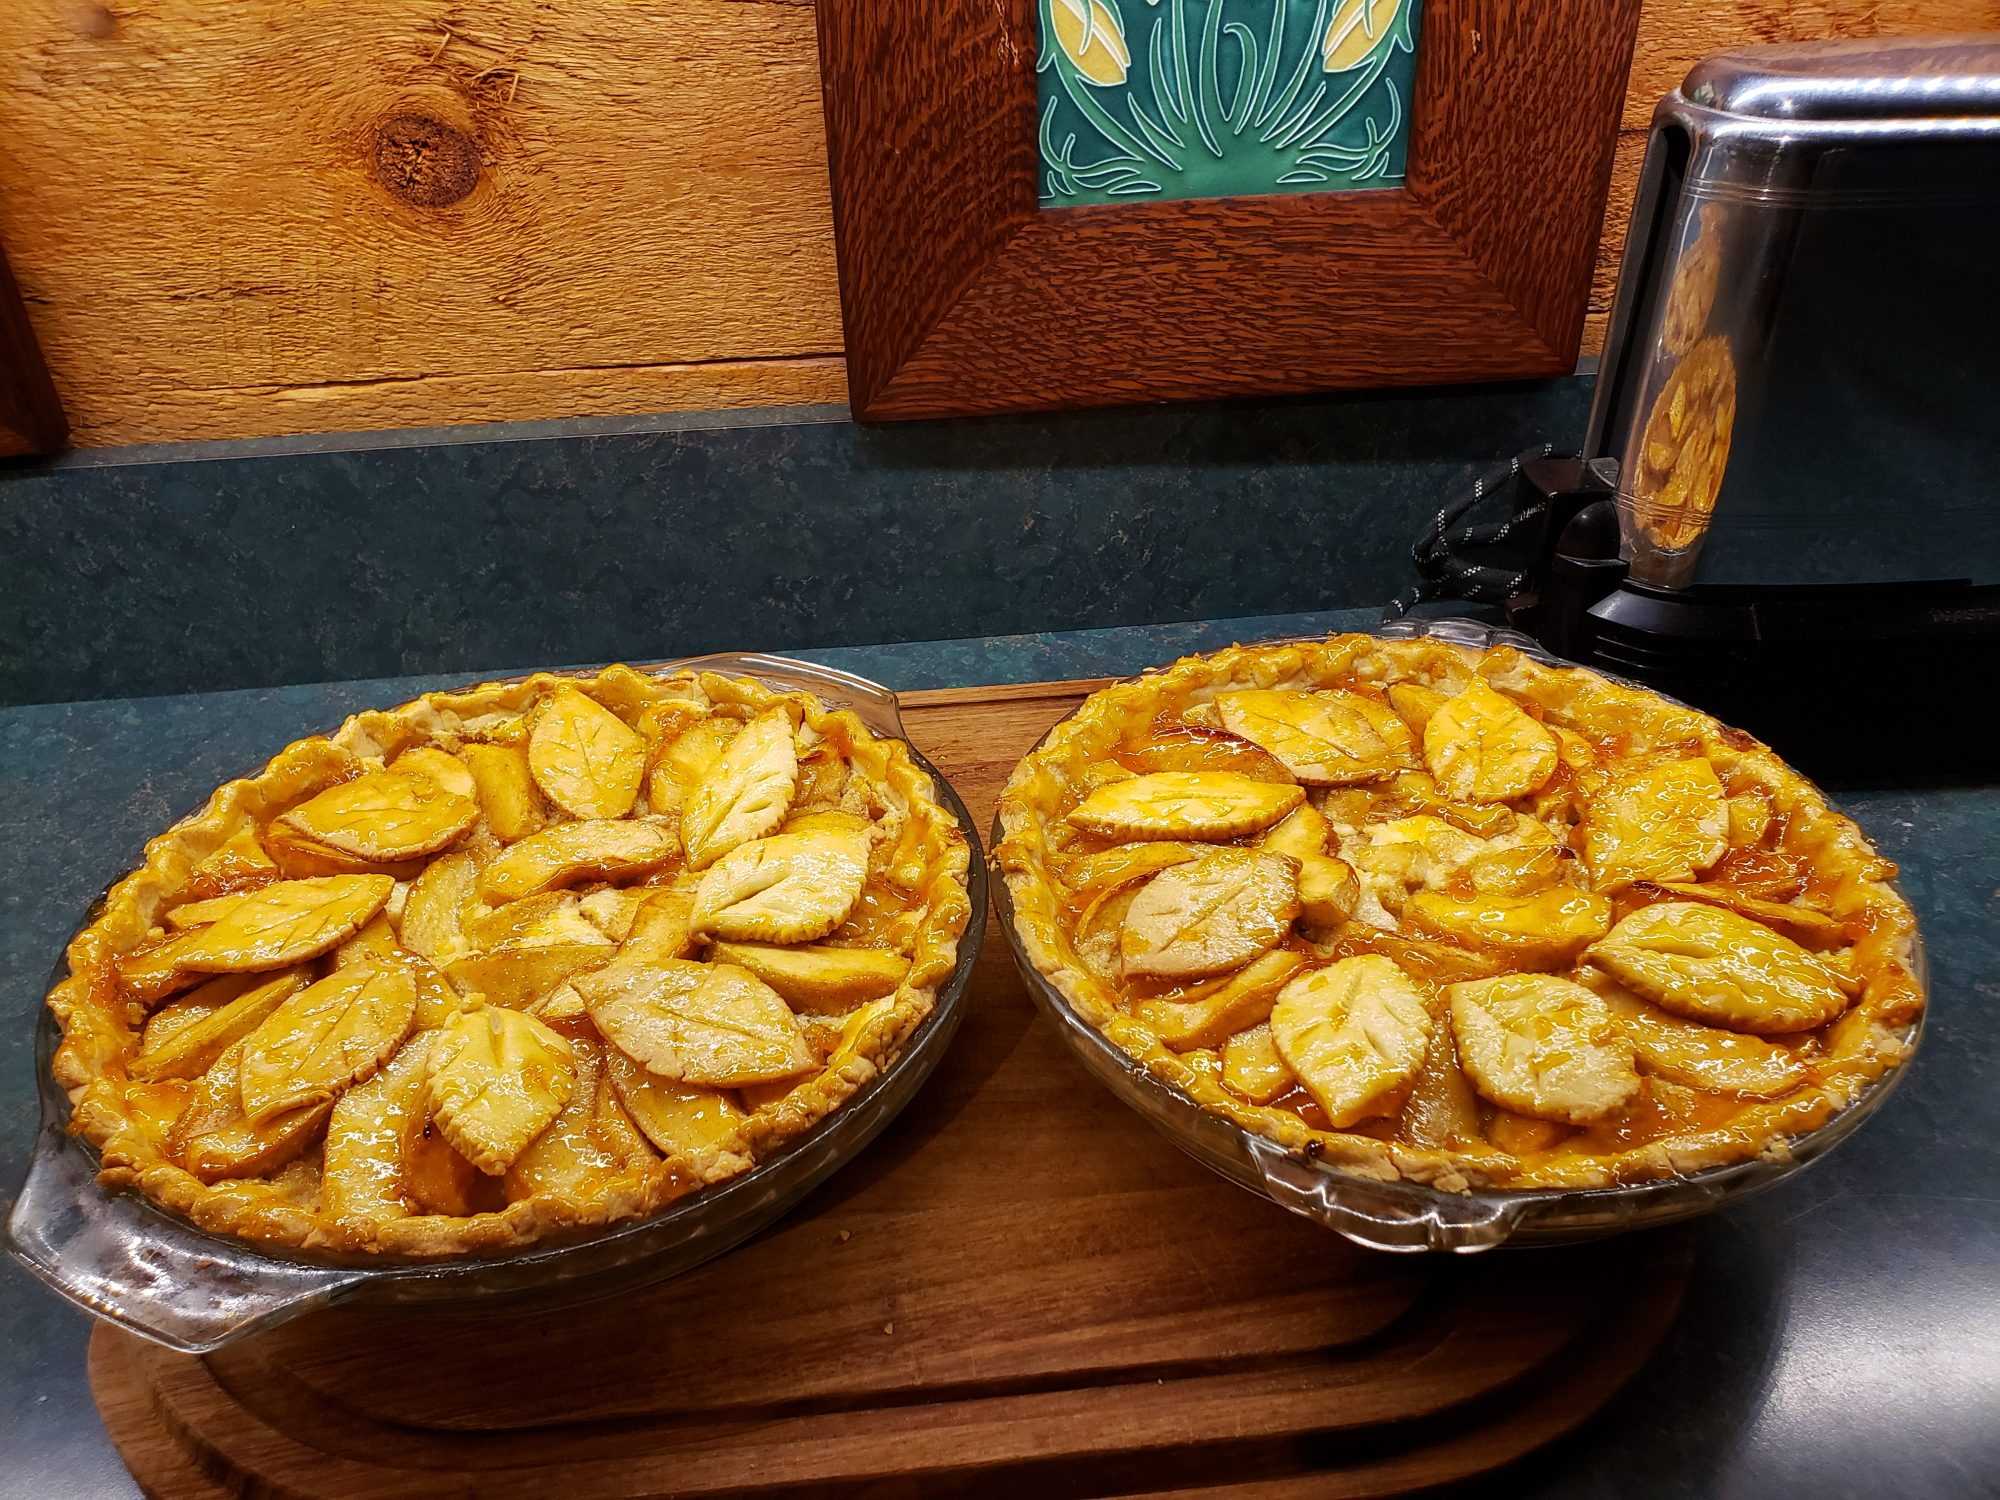 two apple pies garnished with leaf pastry cutouts